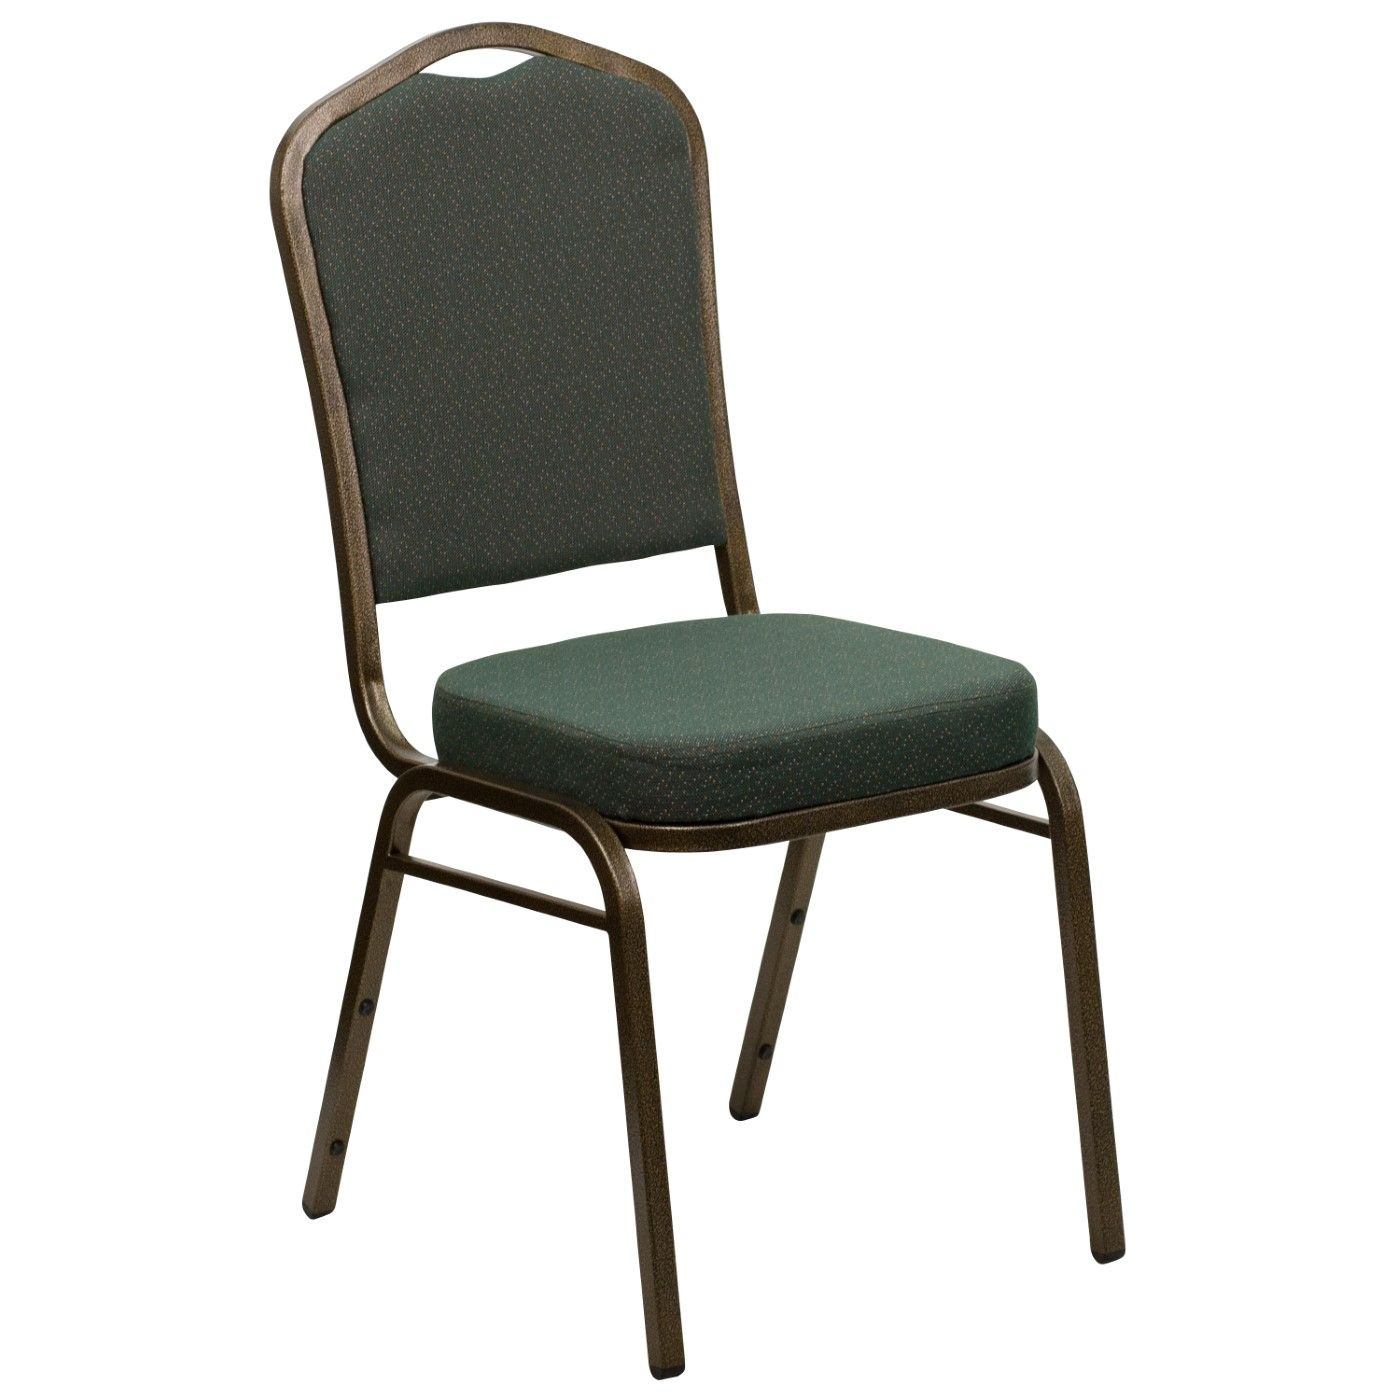 TOUGH ENOUGH Series Crown Back Stacking Banquet Chair in Green Patterned Fabric - Gold Vein Frame